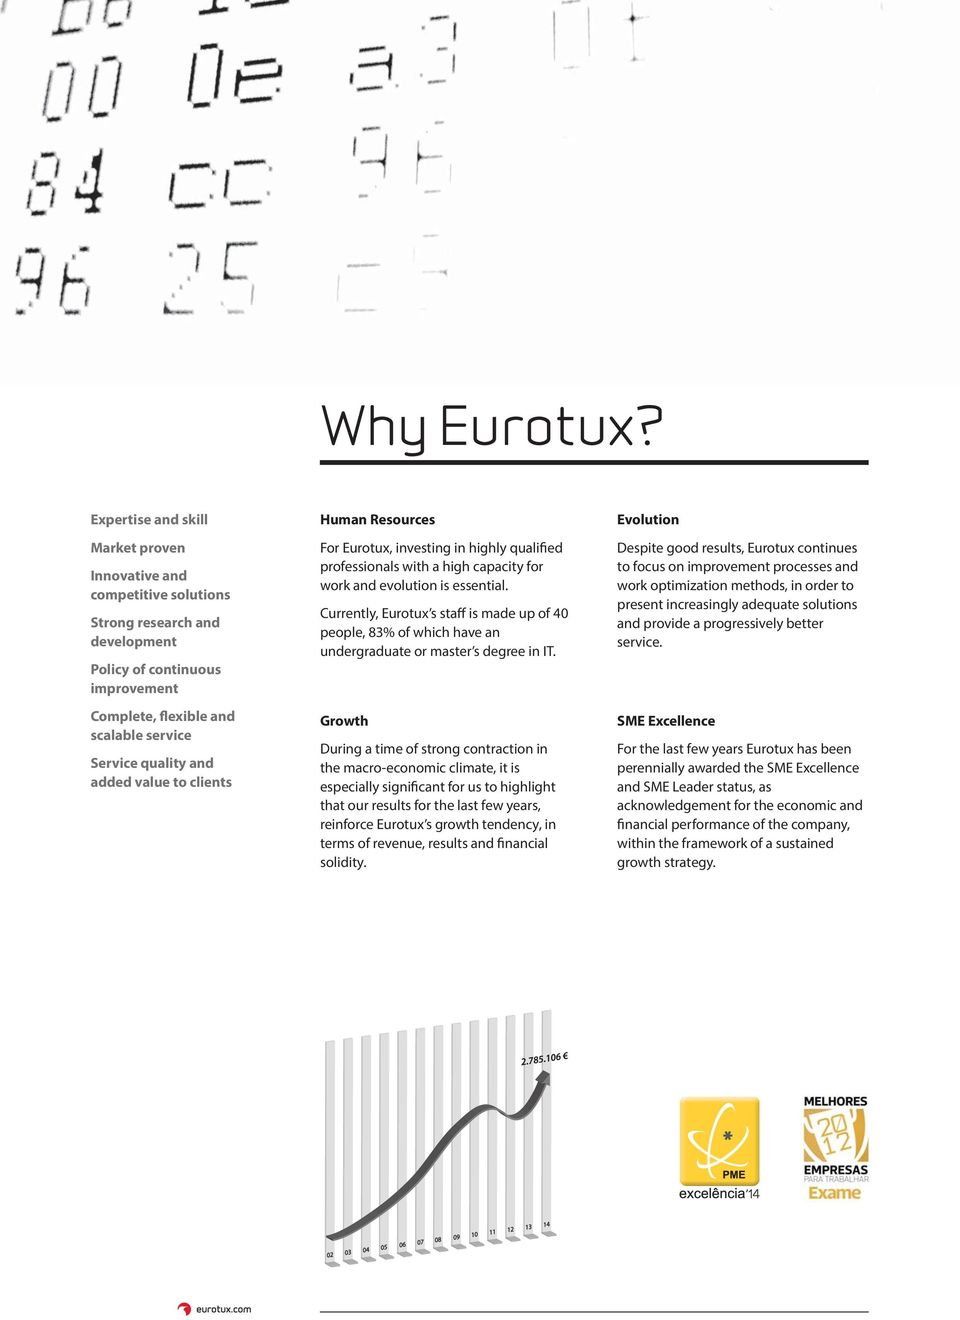 added value to clients Human Resources For Eurotux, investing in highly qualified professionals with a high capacity for work and evolution is essential.